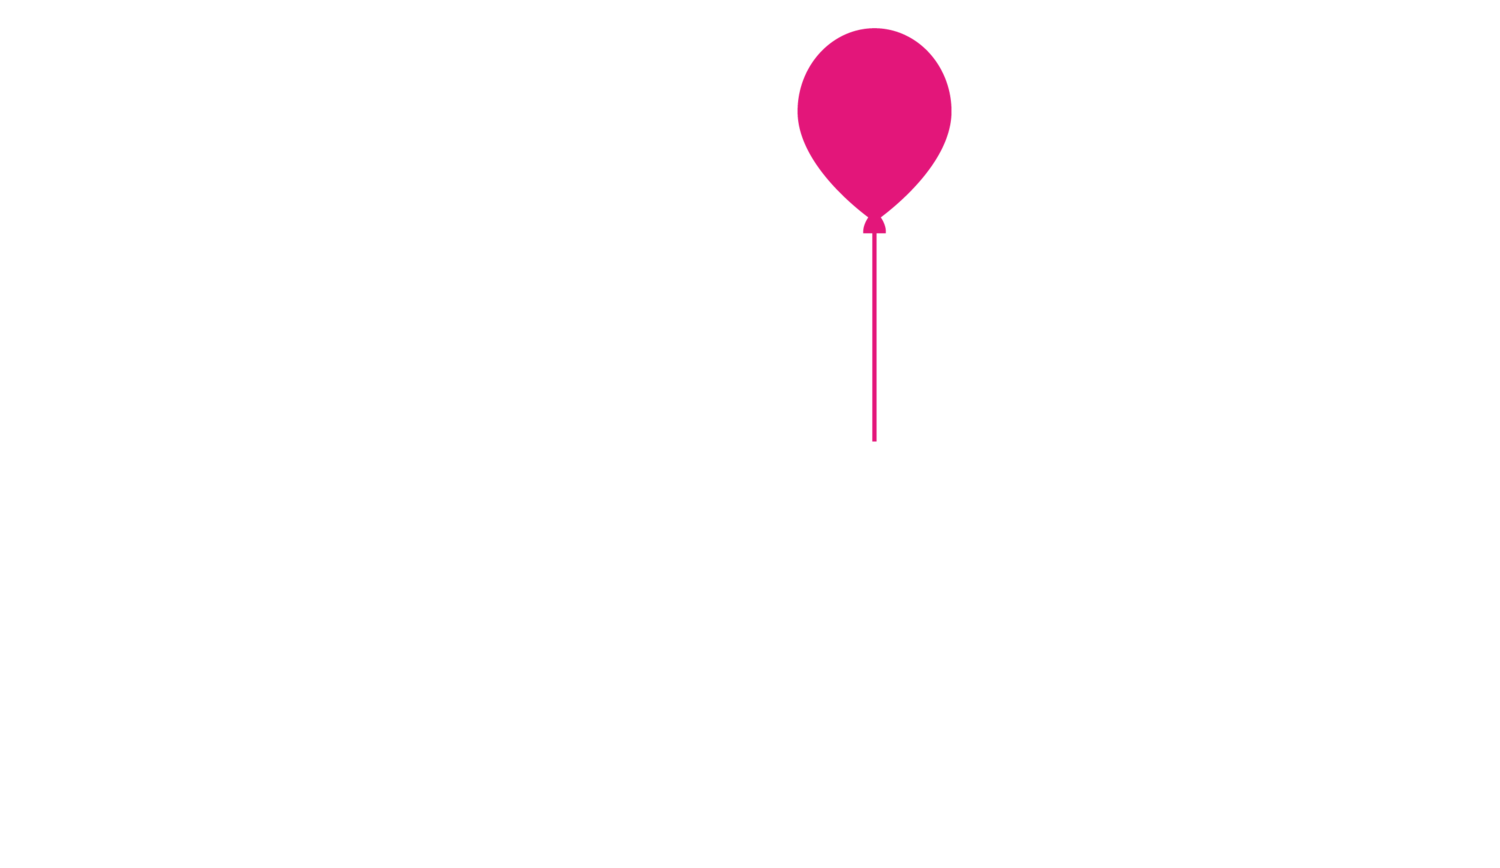 Little Miss Party